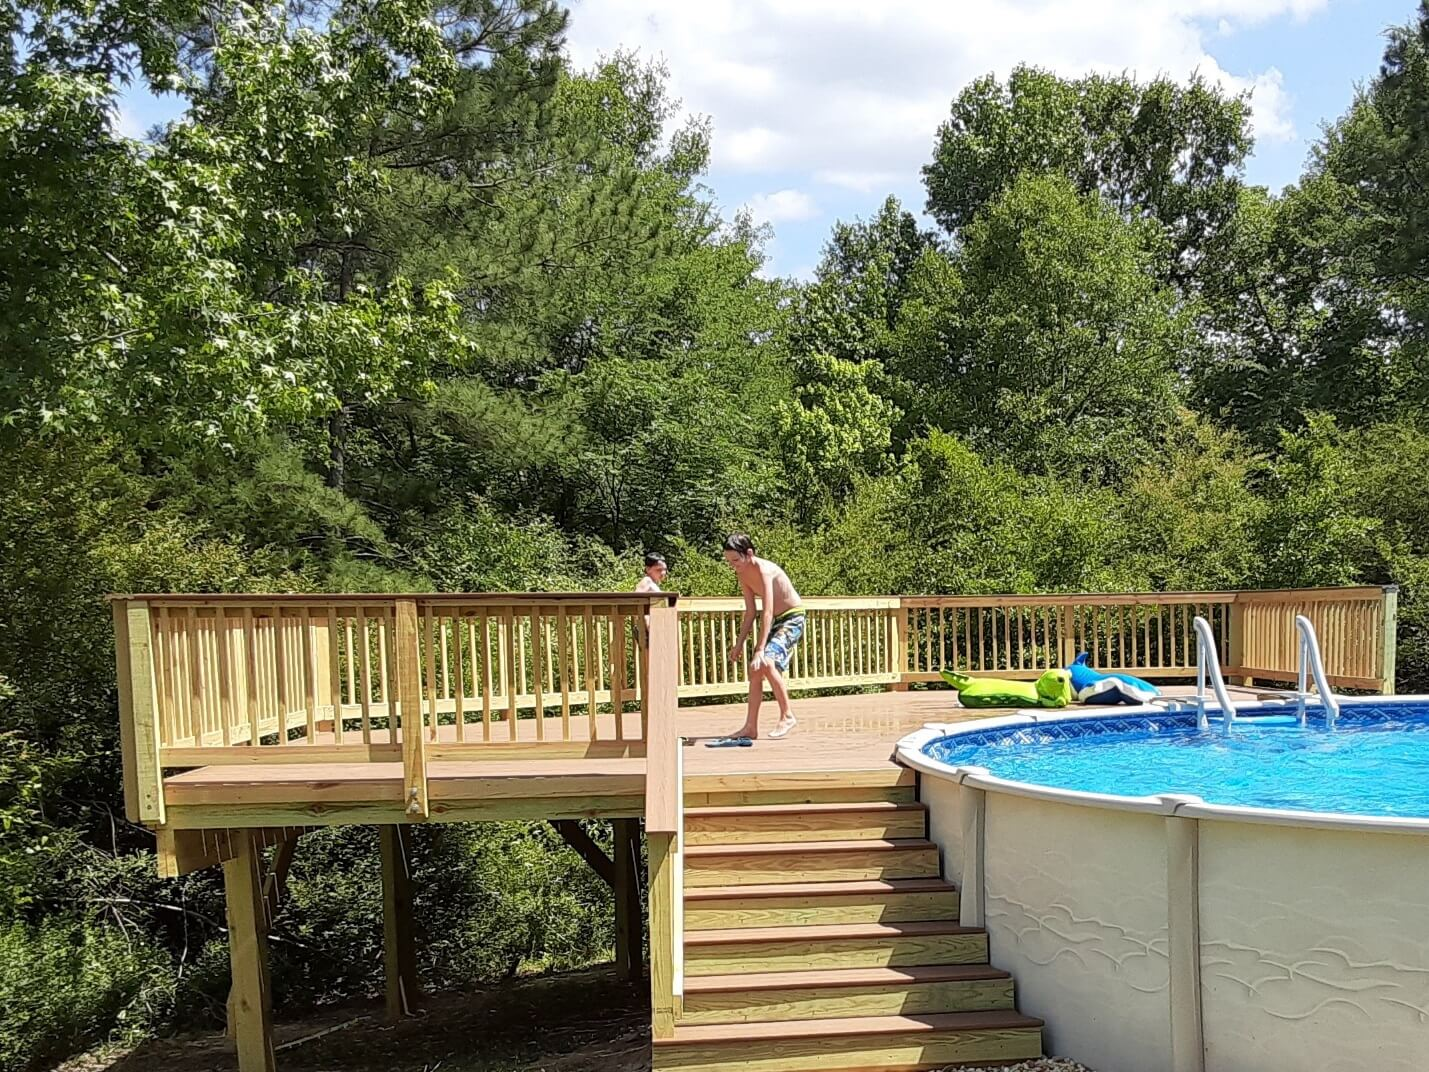 Kids playing on poolside deck